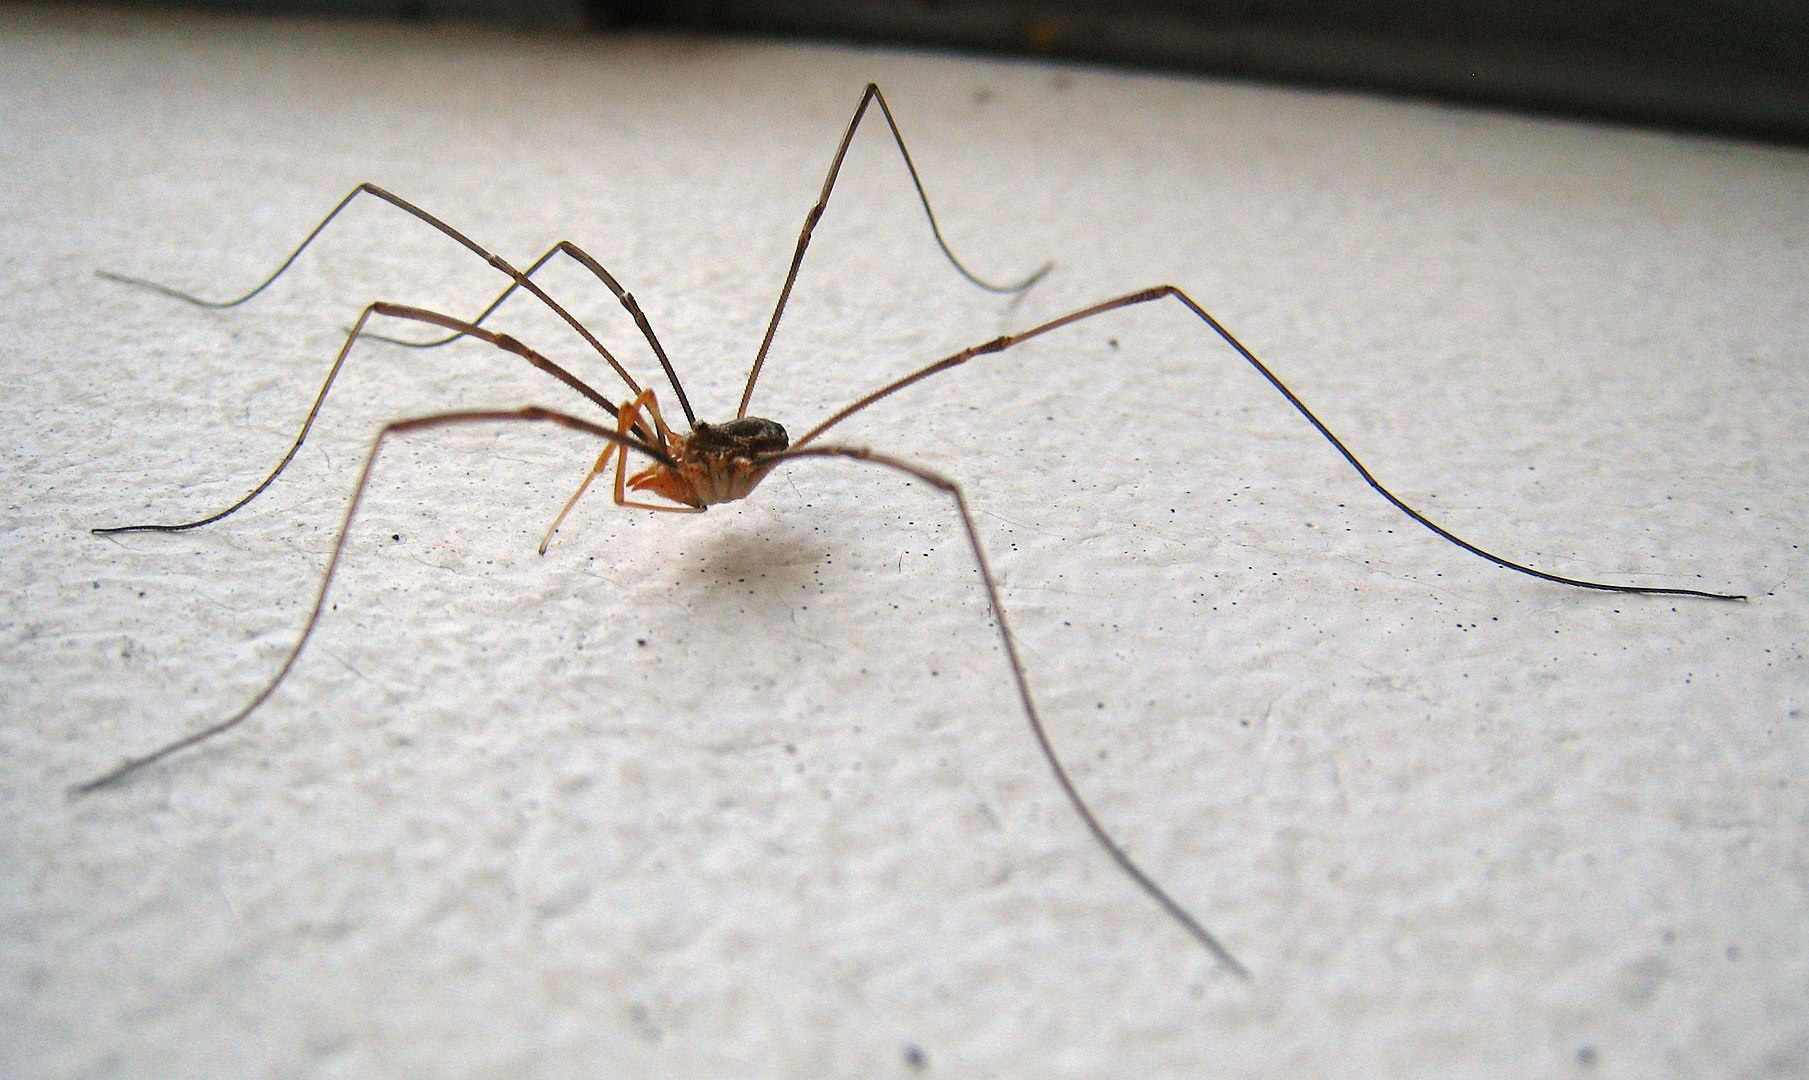 Harvestman on a white background.